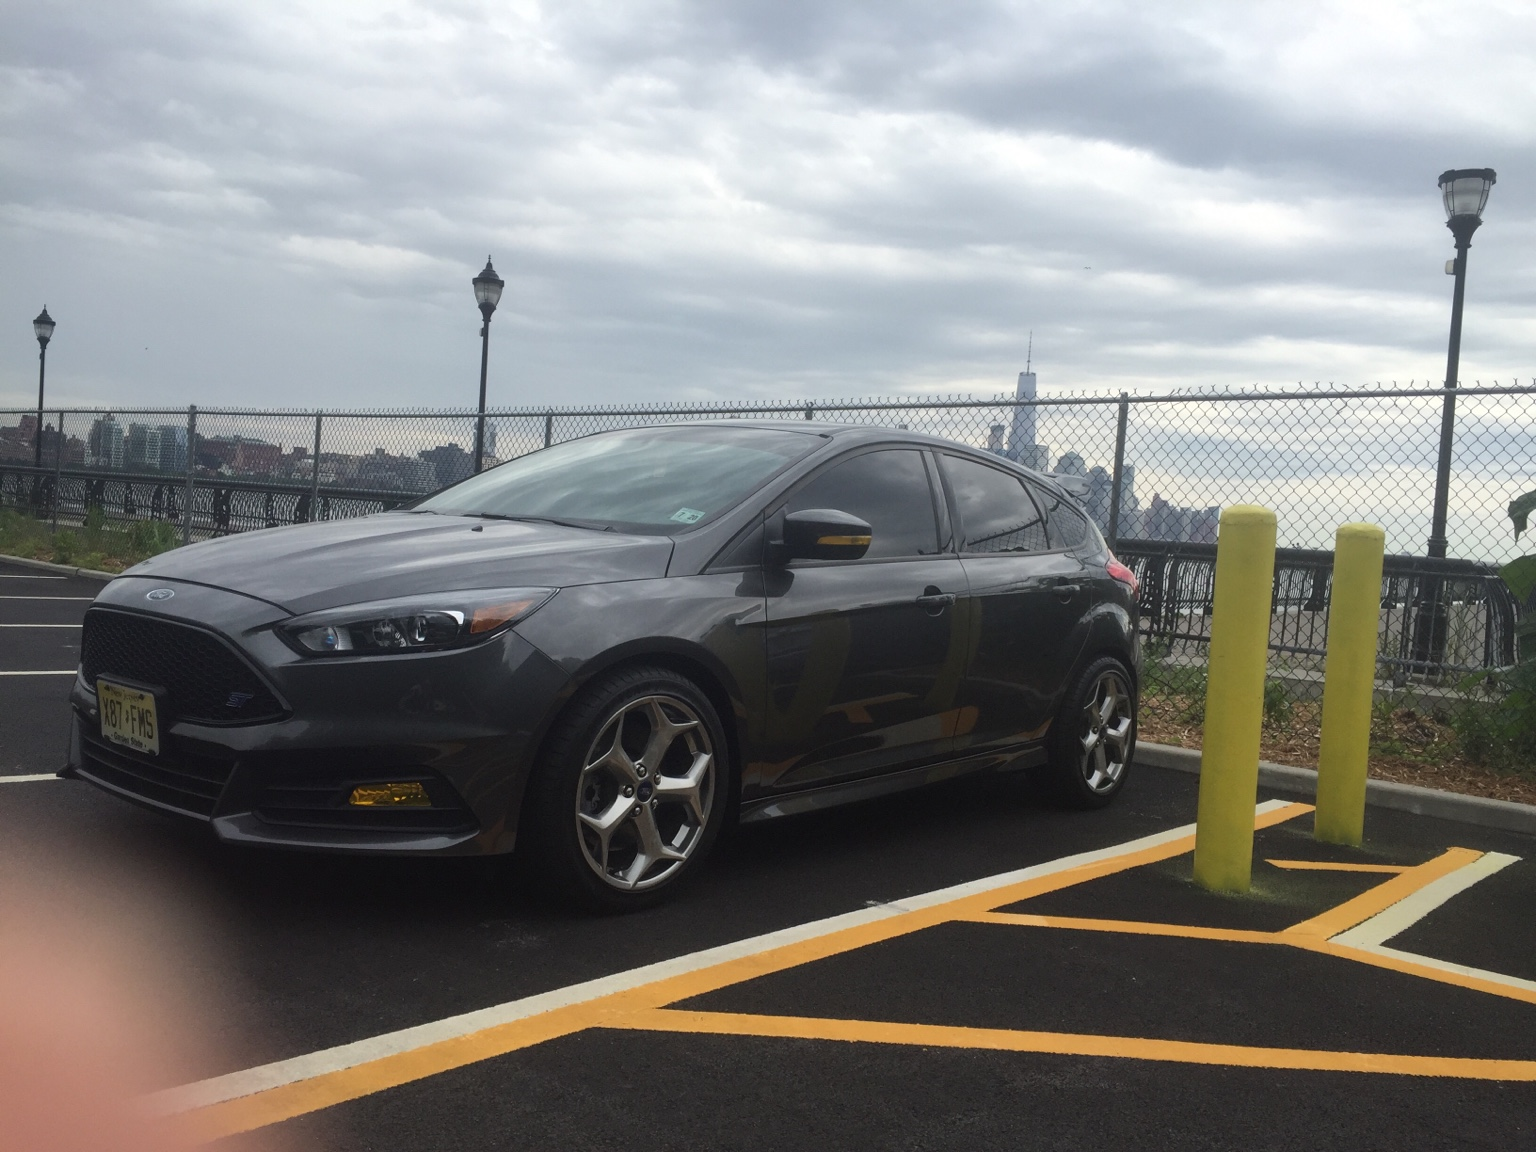 nice gloomy nyc background and my thumb wanted in lol - 2015 Ford Focus St Magnetic Metallic